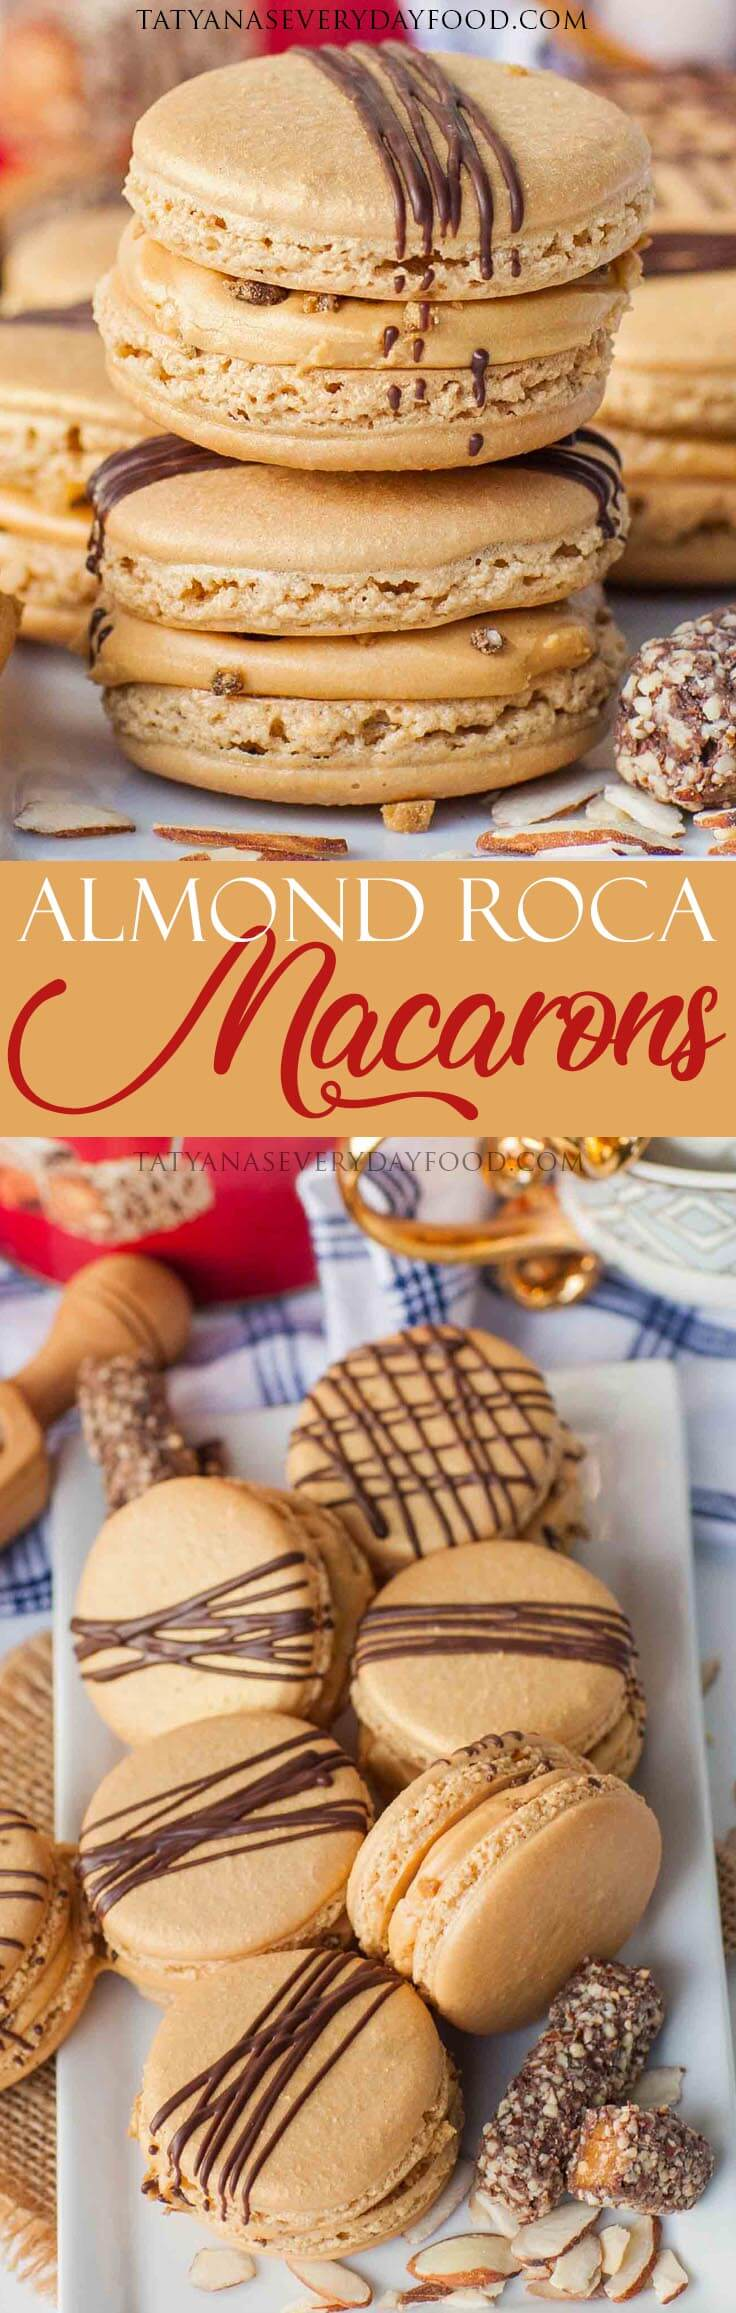 Almond Roca Macarons recipe with video